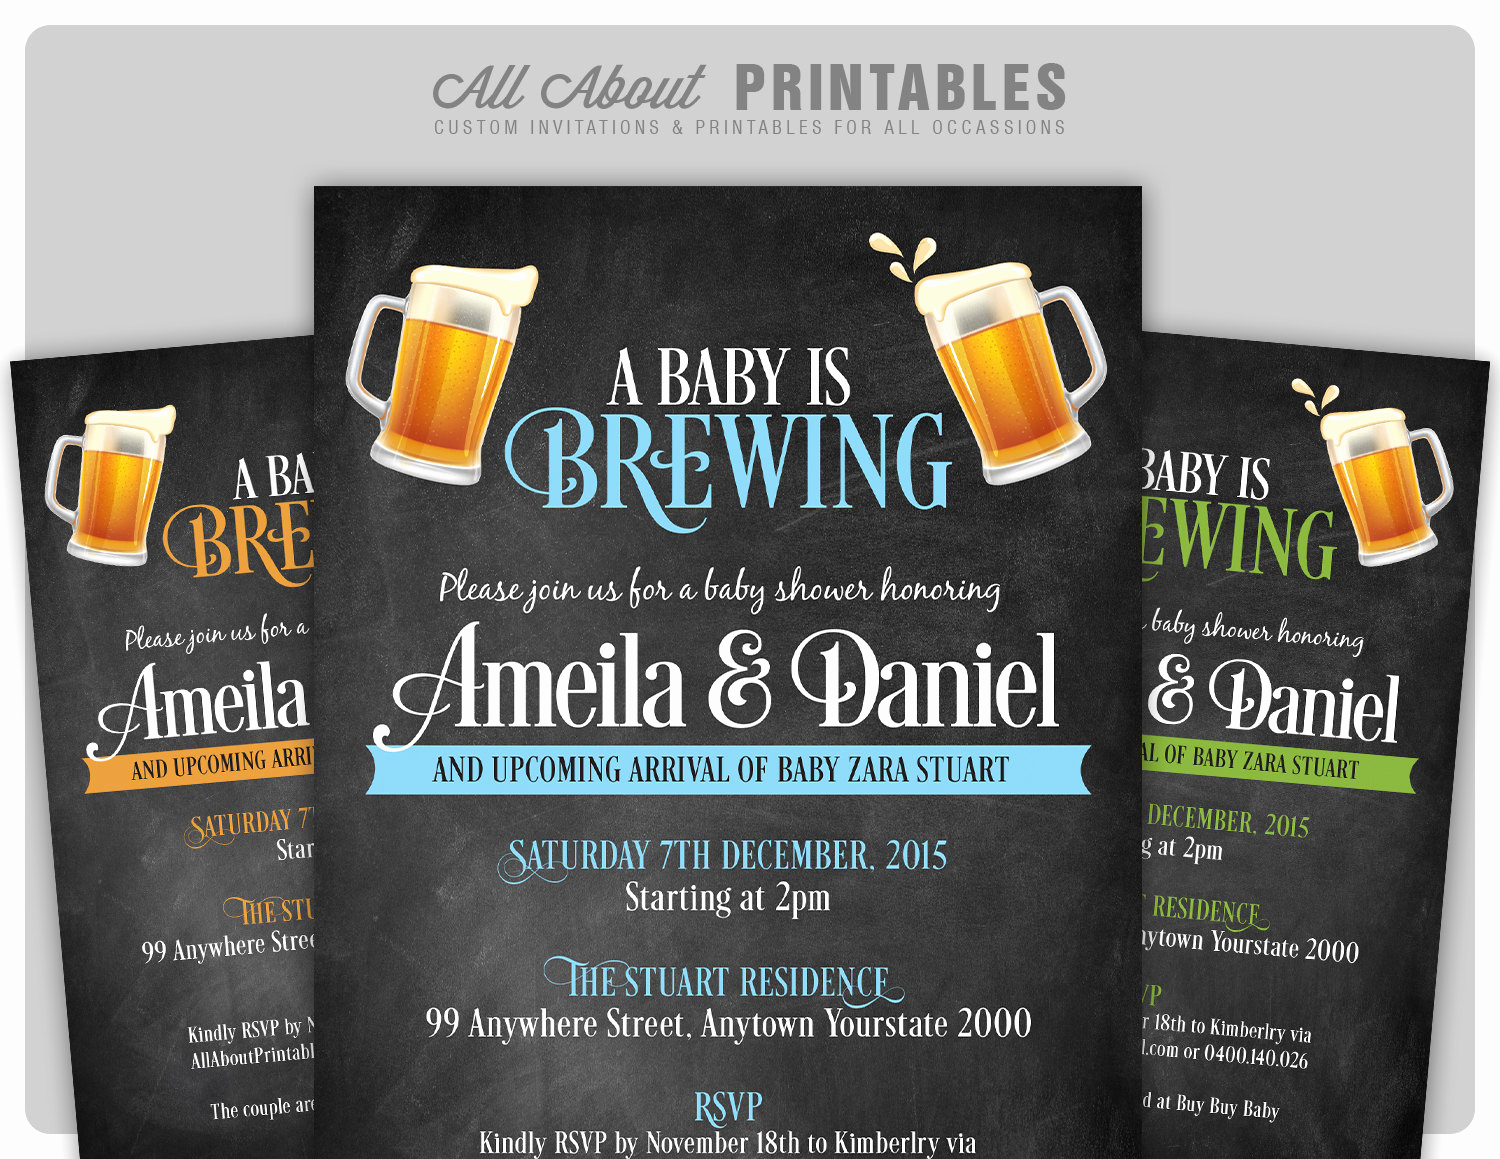 A Baby is Brewing Invitation Elegant Baby Shower Invitation A Baby is Brewing Baby Shower Invite